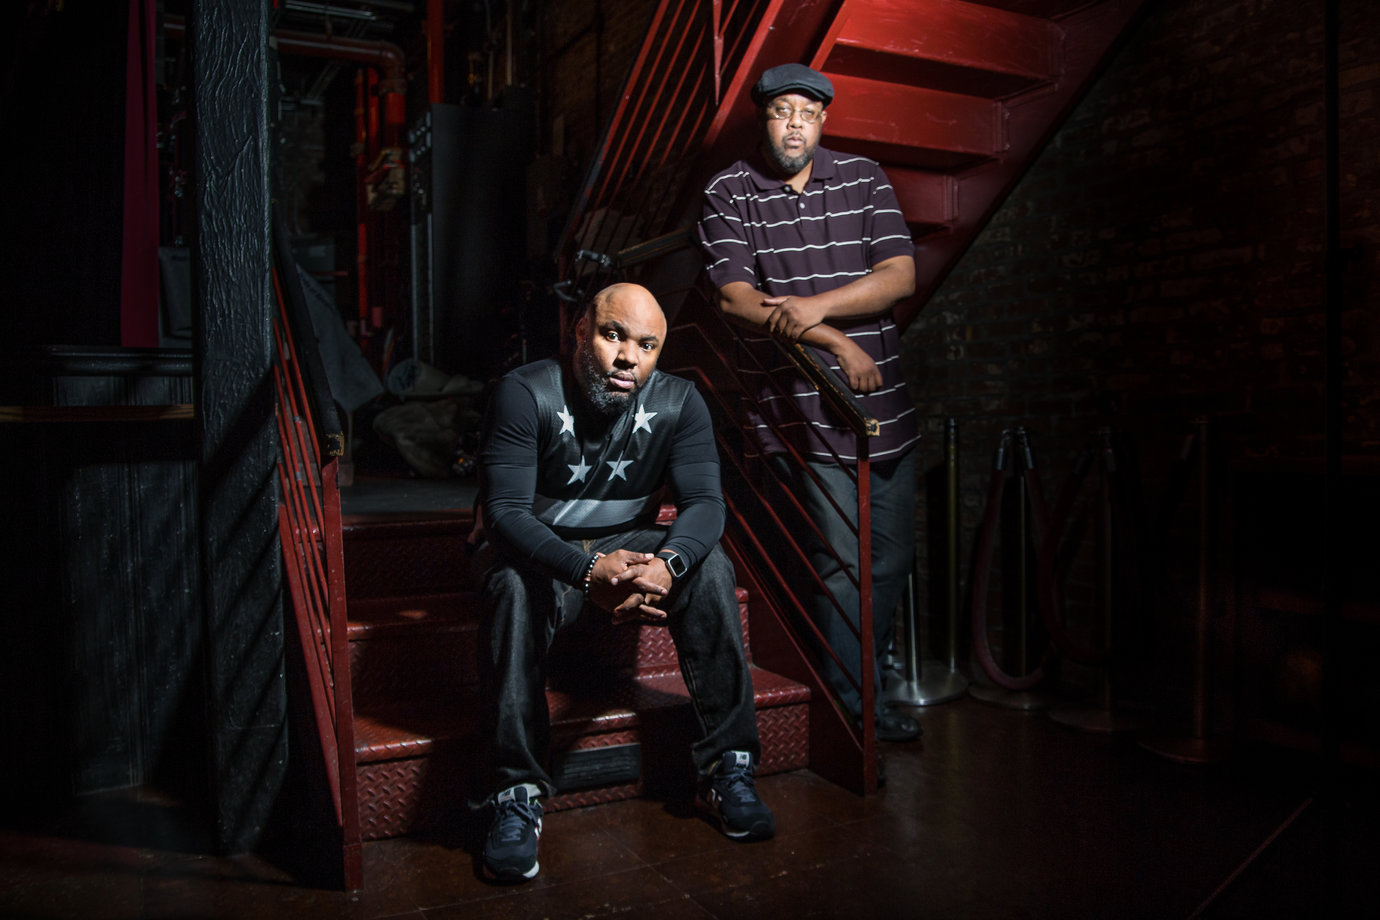 Sat. Dec. 15th-2018/ Blackalicious w/ ELZO + After Party w/ Glass Tung- In the Crystal Bay Club Casino Crown Room- 21+ On Sale Now!